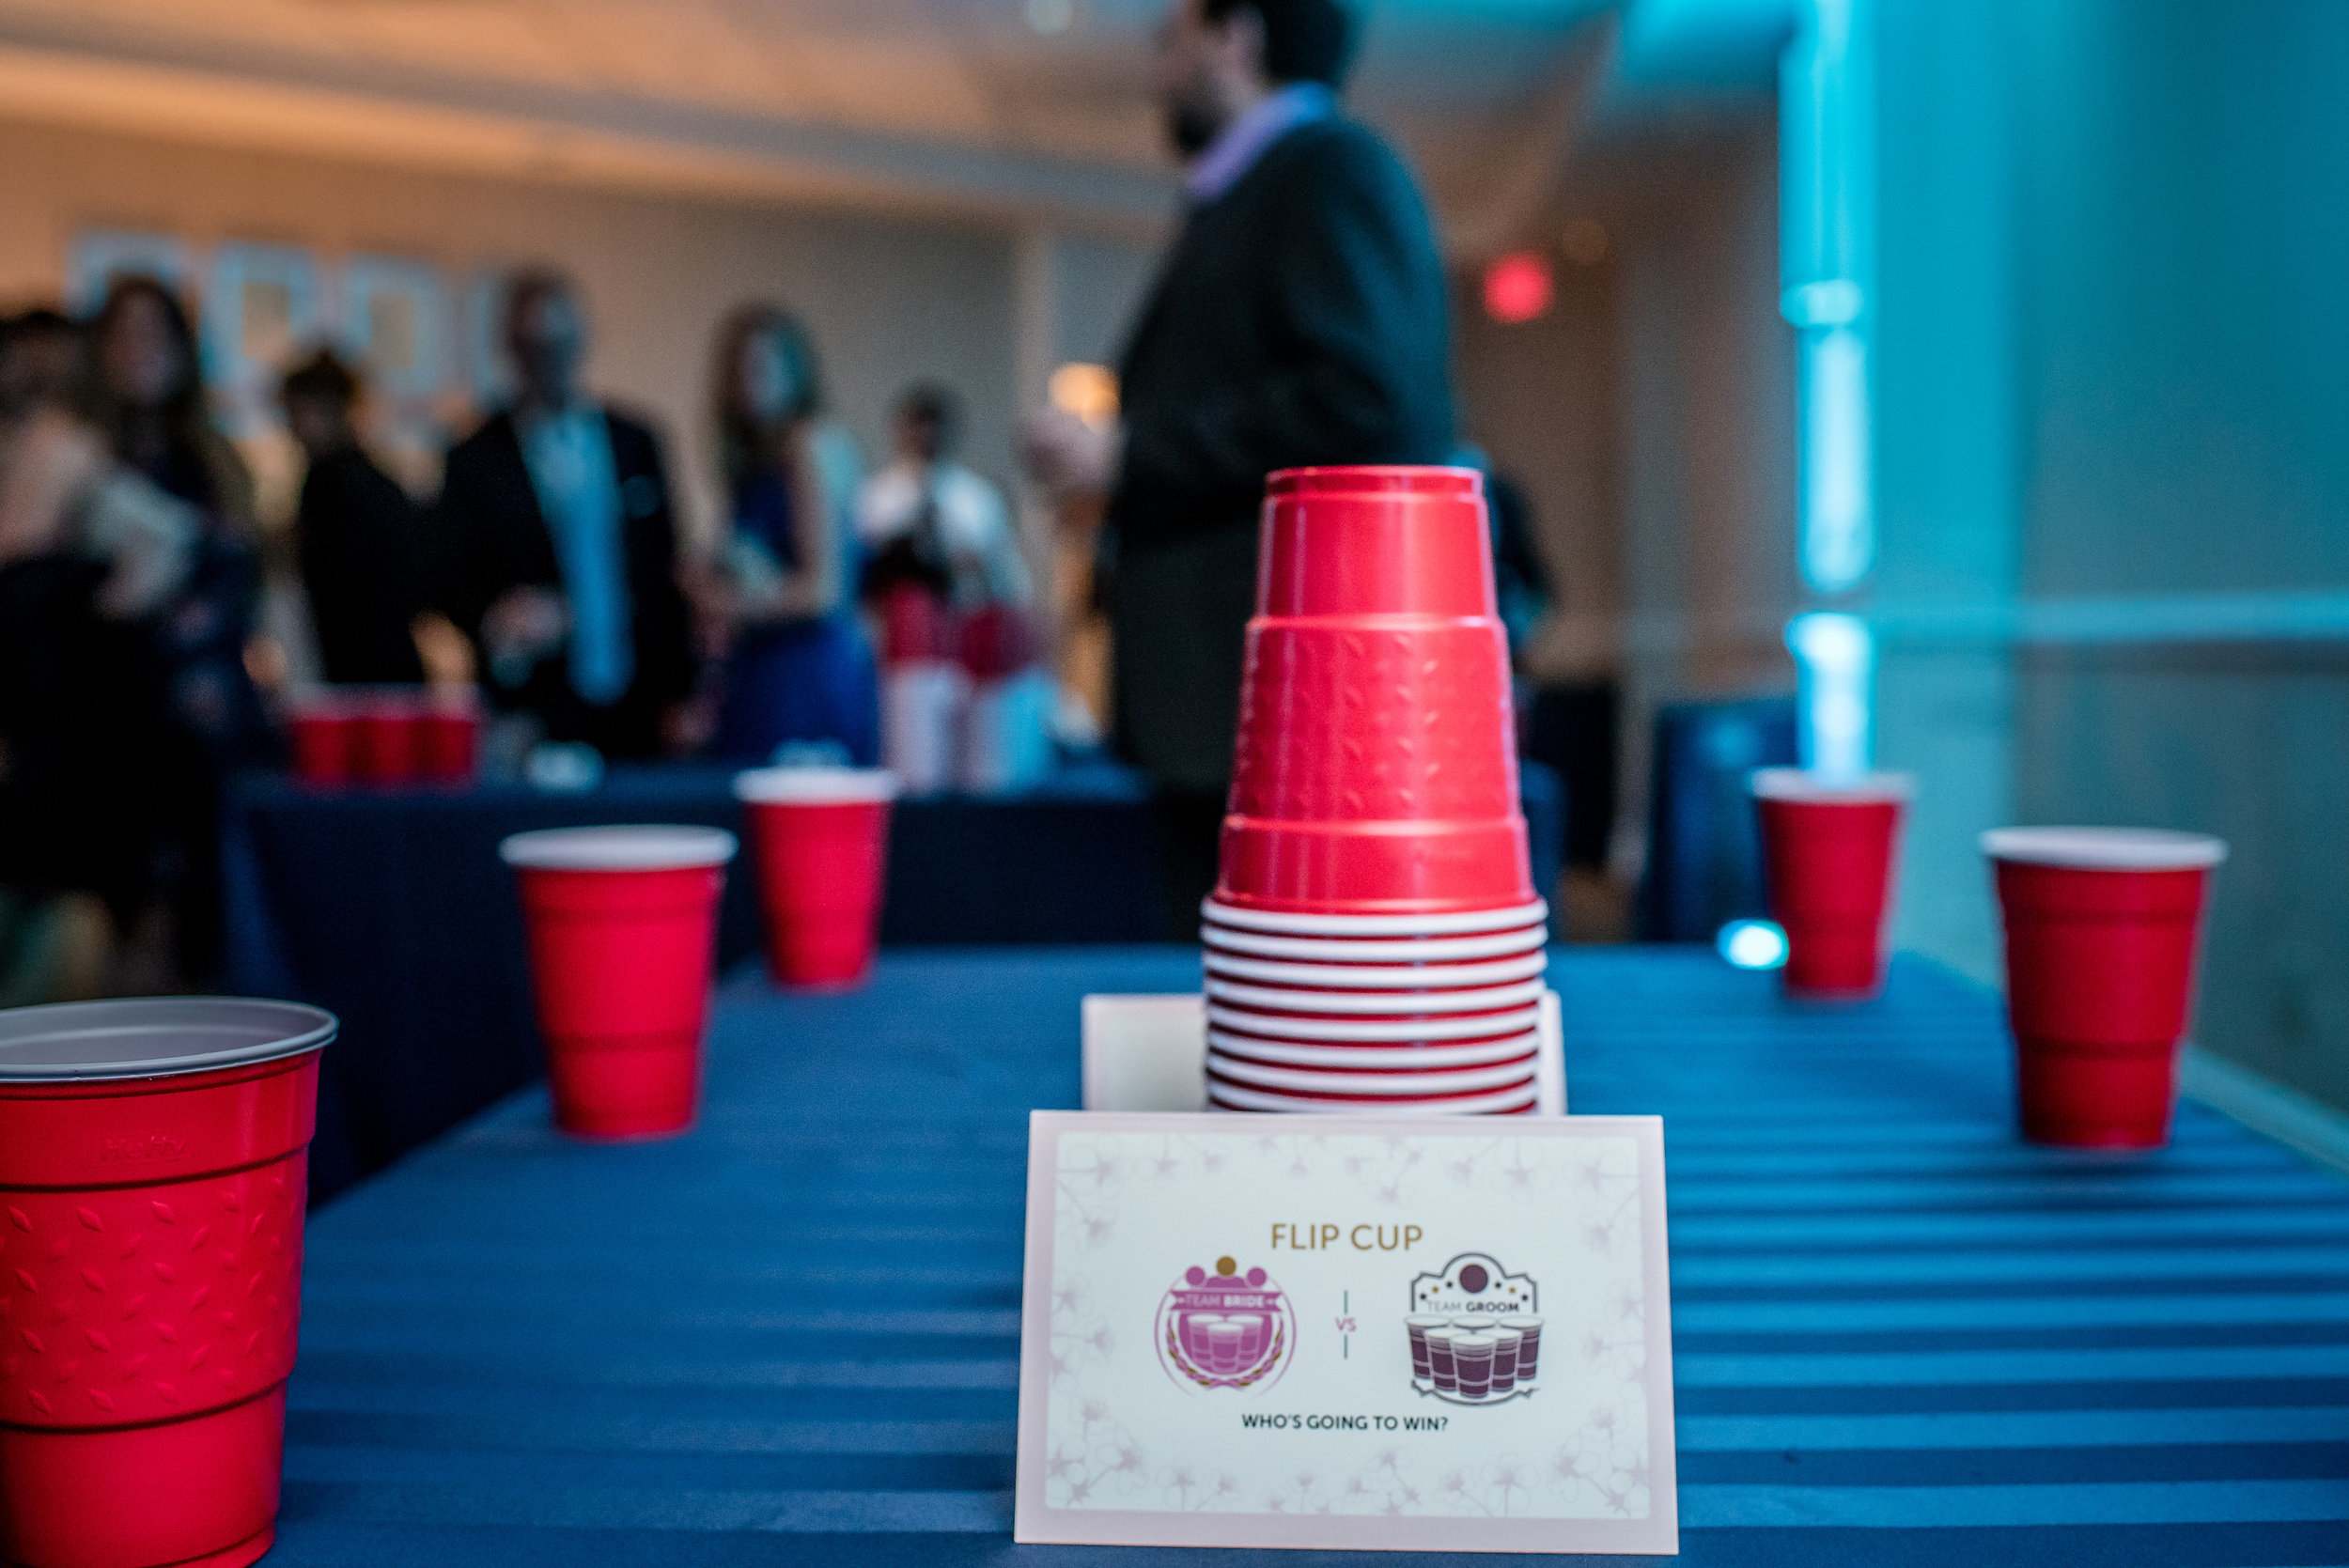 RED SOLO CUP AFTER PARTY